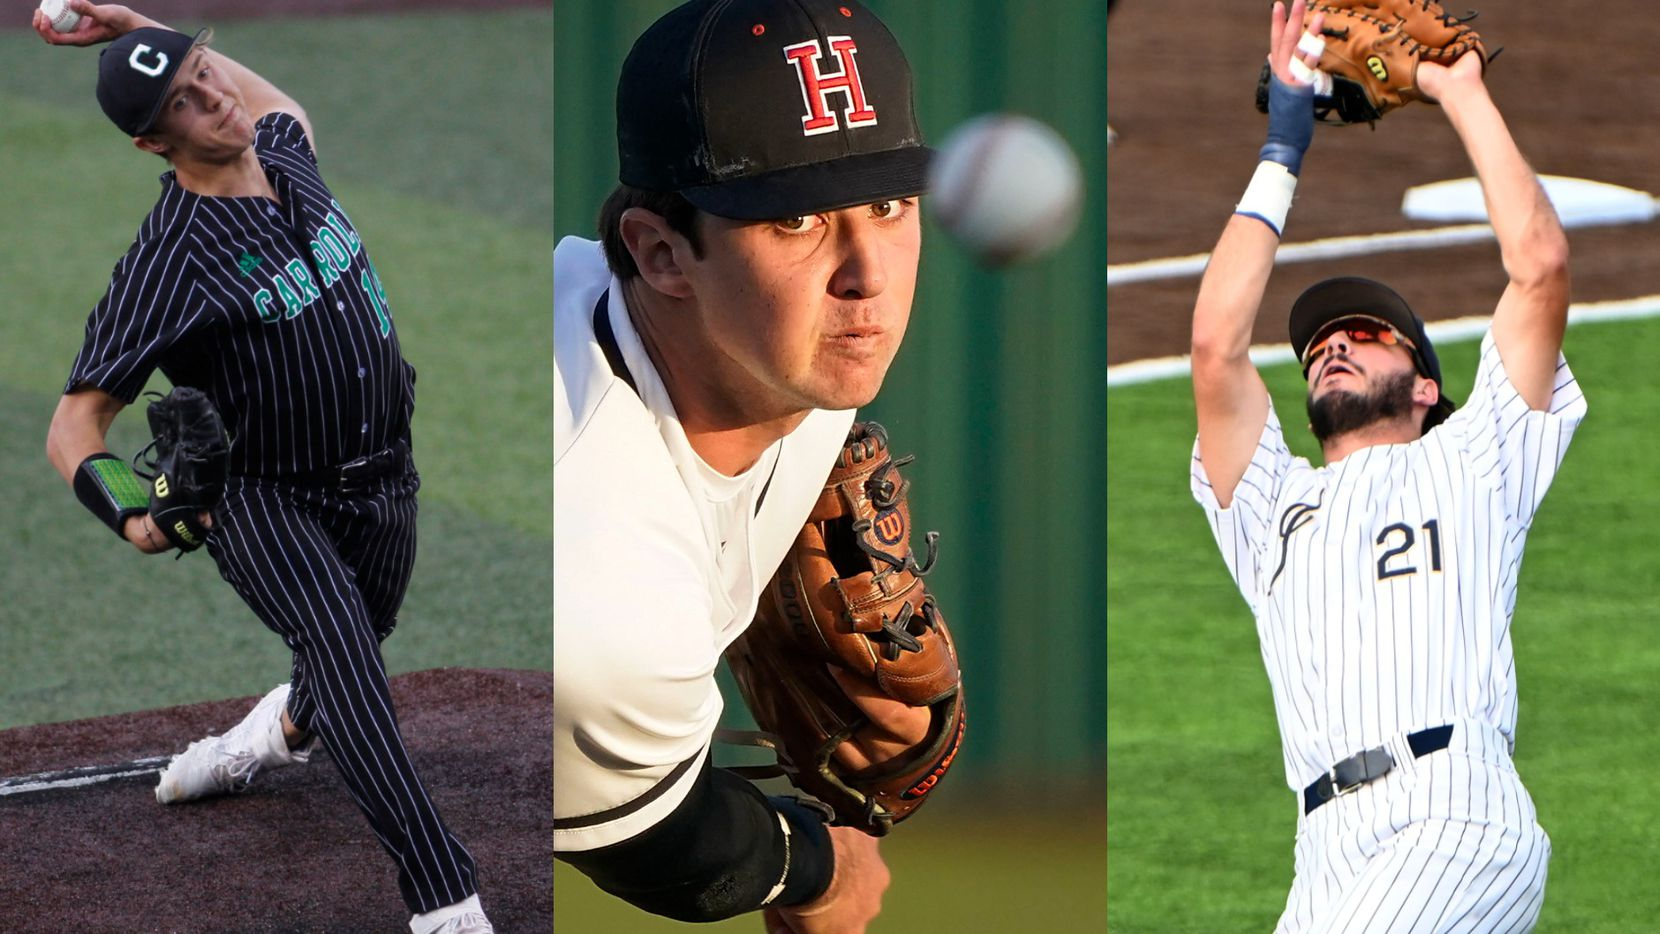 From left to right: Southlake Carroll's Griffin Herring, Rockwall-Heath's Josh Hoover and Keller's Gray Rowlett.